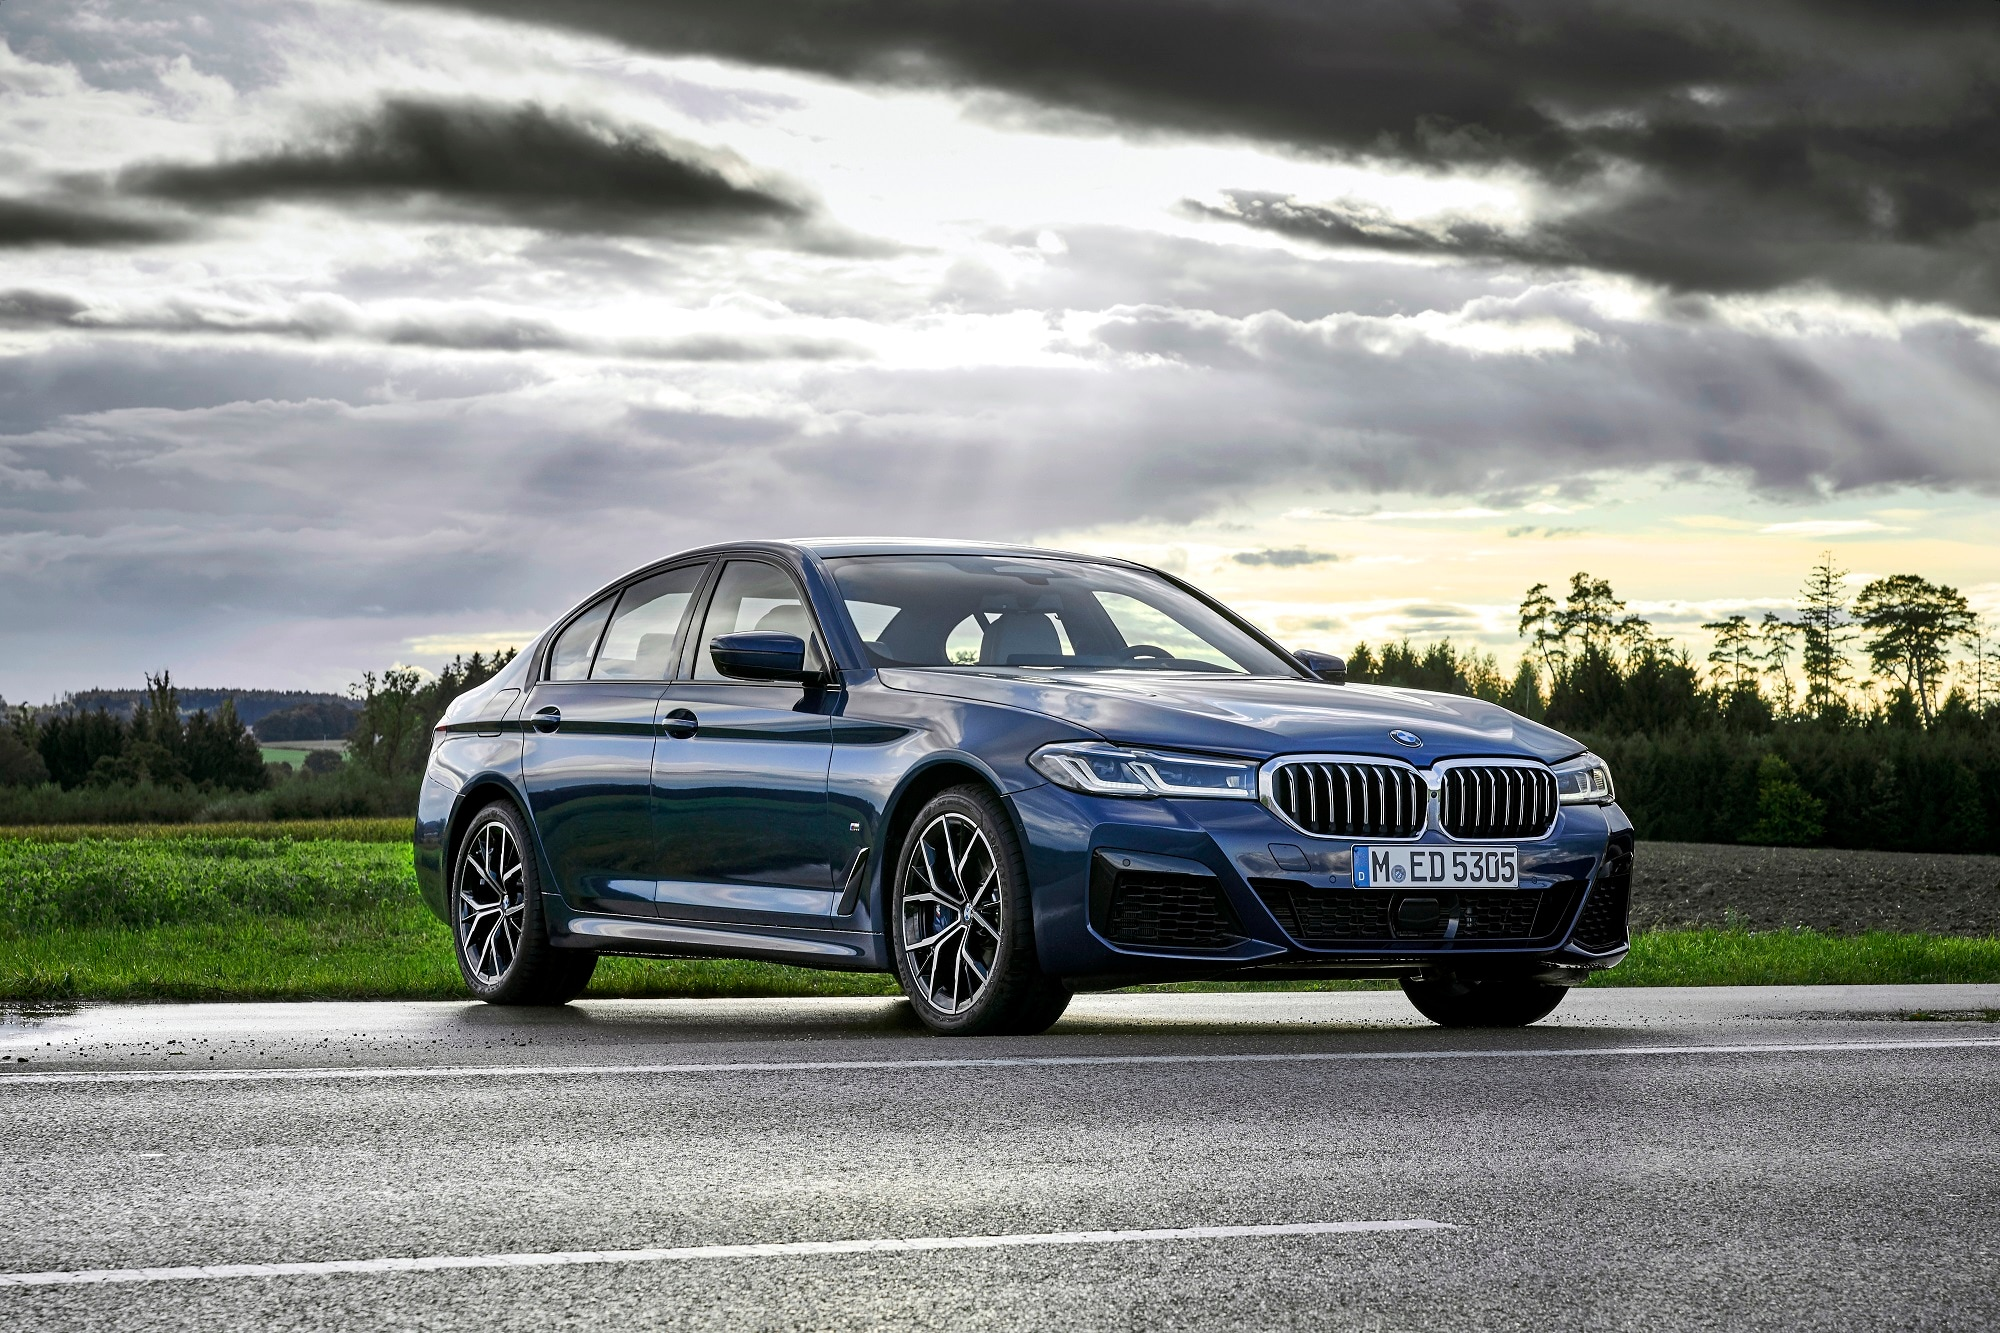 The 2021 BMW 5 Series is available in two new colour options including the Phytonic Blue metallic and Bernina Grey Amber effect.